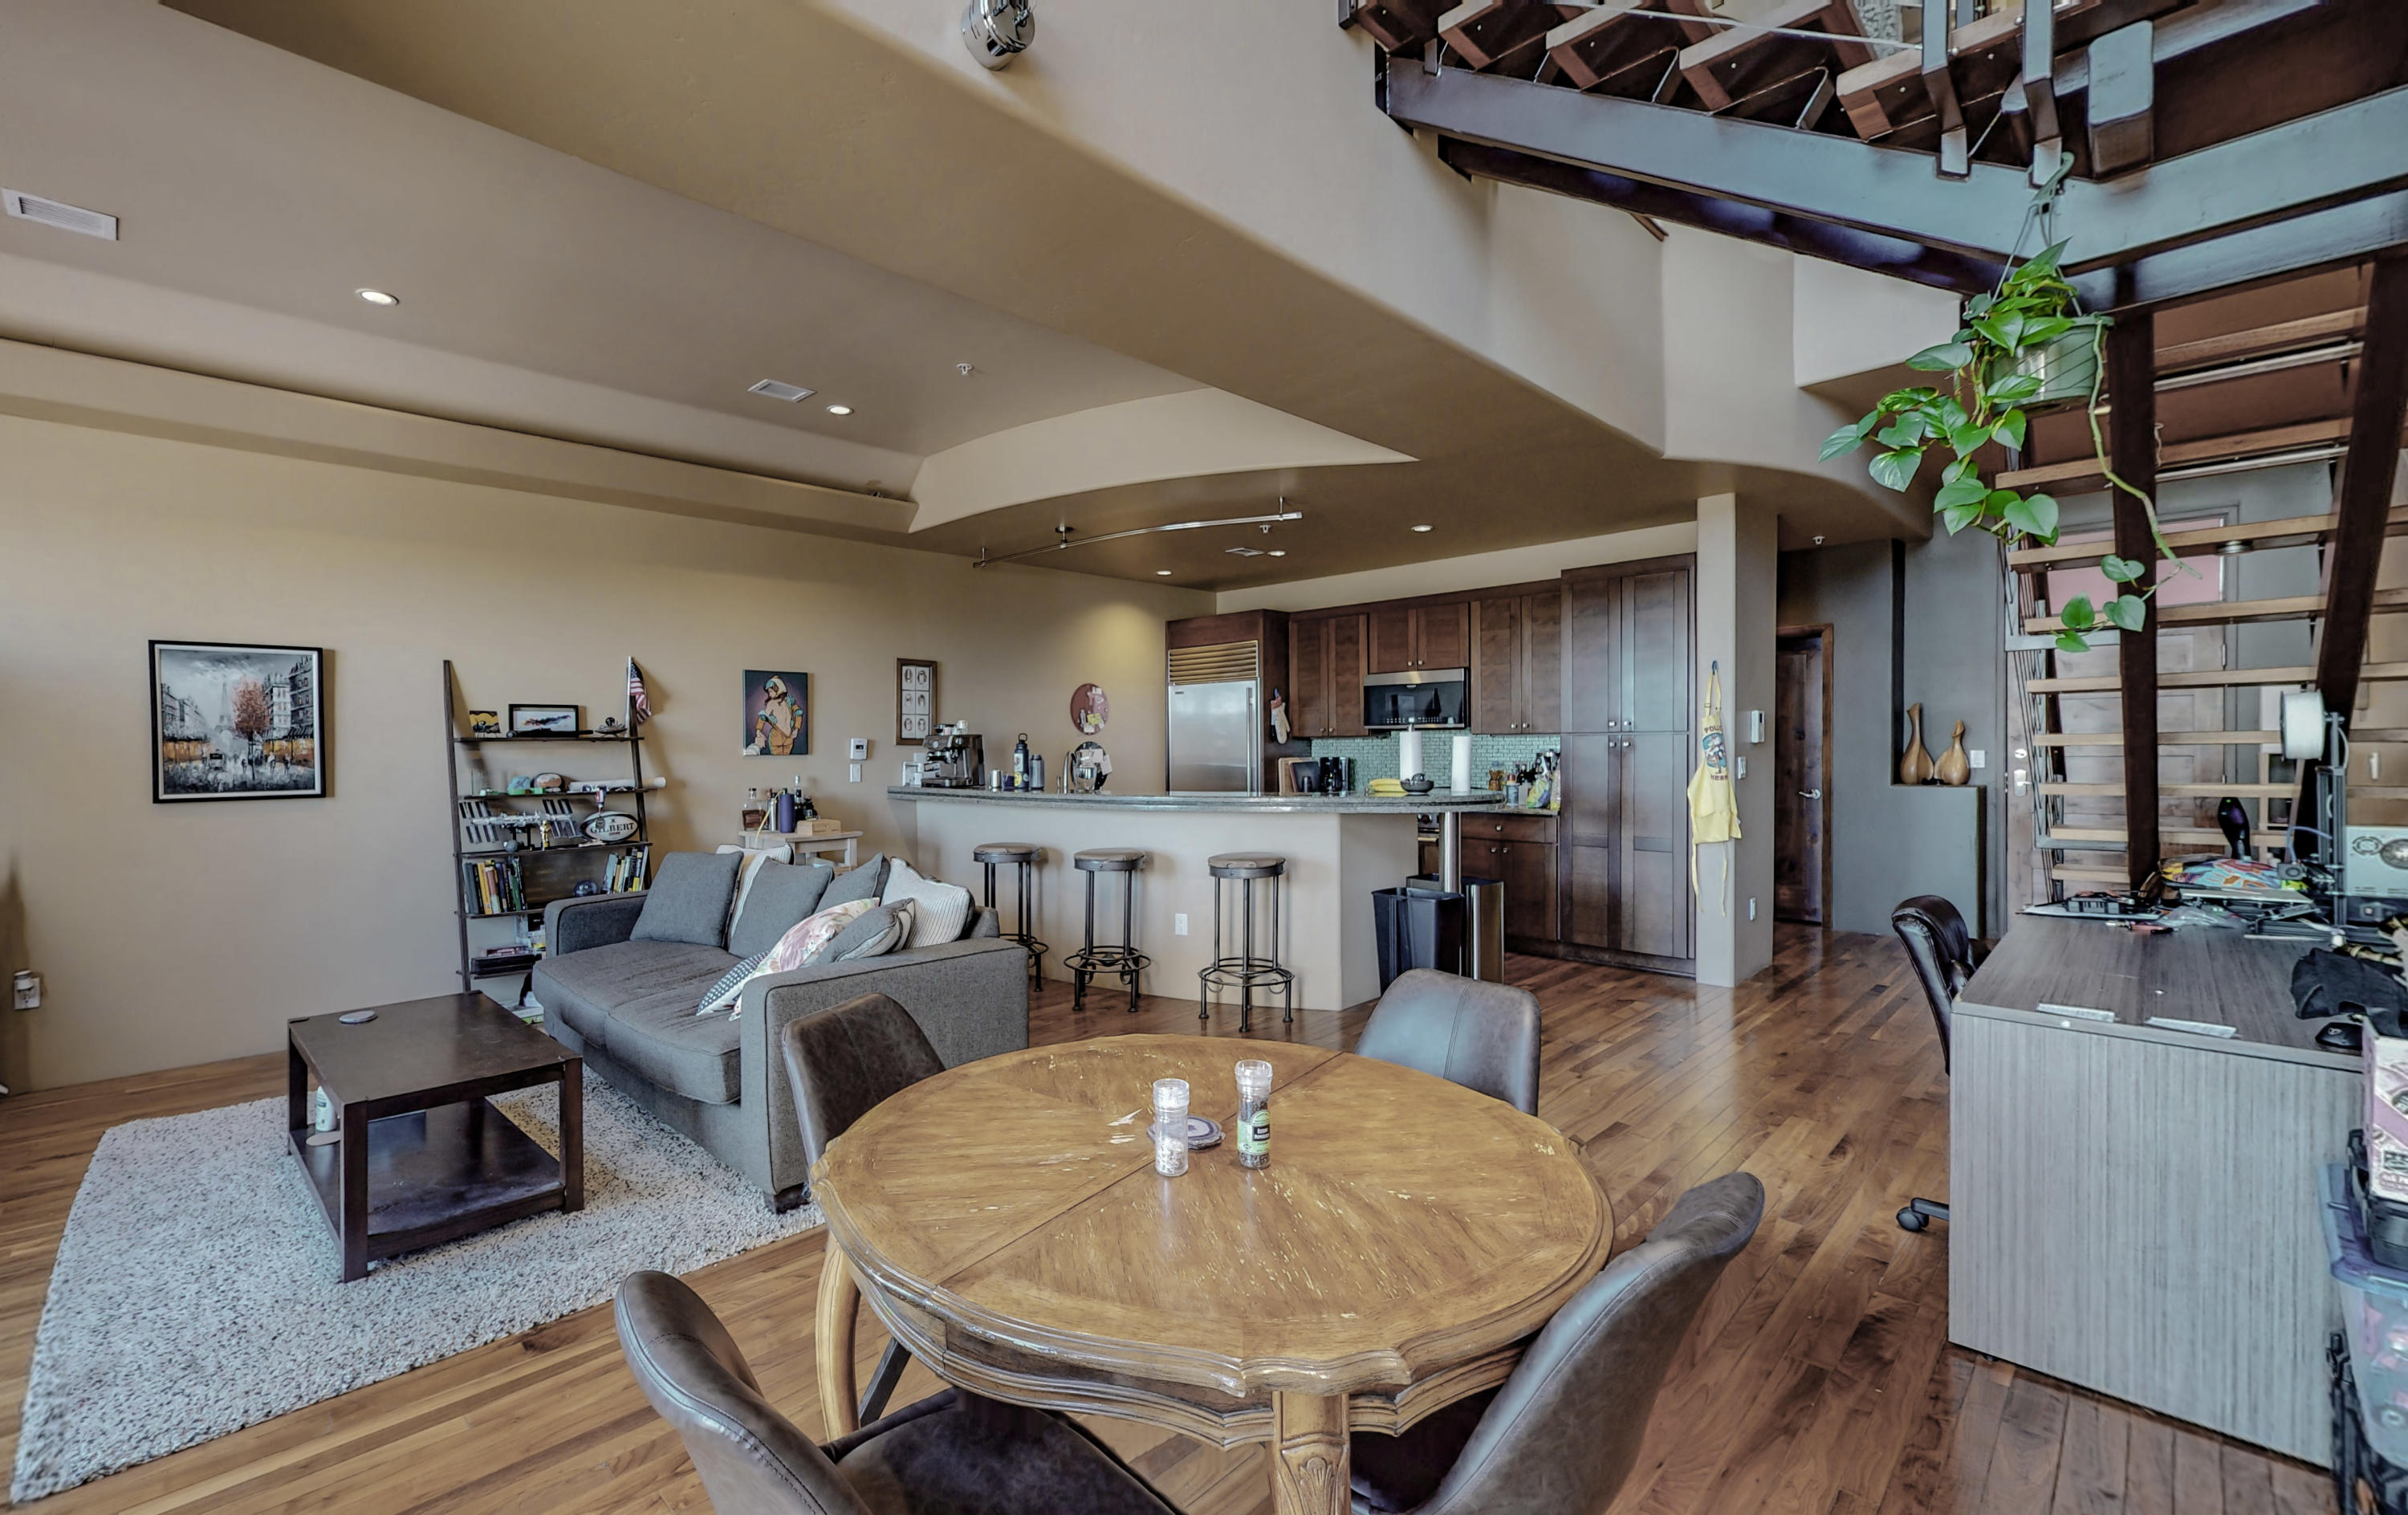 This could be one of the nicest condos that has been listed for sale in Albuquerque!  The location is perfect as it is on Central in the heart of Nob Hill, the entertainment center of ABQ.  Situated in The Place in Nob Hill, this modern loft style condo boasts an approximately 581 square foot rear deck with views of the Sandia Mountains!  Additional features include:**Granite Countertops**Upgraded Wolf Appliance Package**Real Wood Floors**Urban Architecture**Open and Airy Floorplan**Tons of Natural Light**Private Tandem 2 Car Garage**This condo is great for entertaining!  Please schedule your private tour with a realtor today...